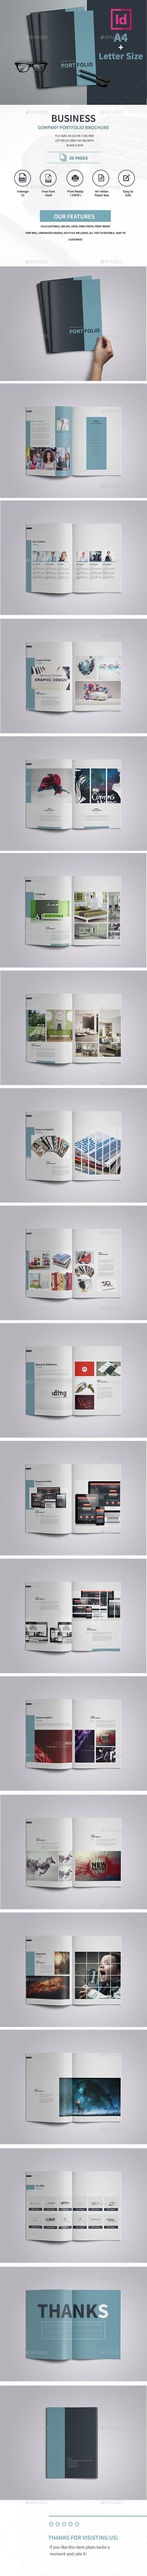 Company Portfolio Brochure A4 And Letter Template InDesign INDD. Download here: http://graphicriver.net/item/company-portfolio-brochure-a4-and-letter/16281833?ref=ksioks